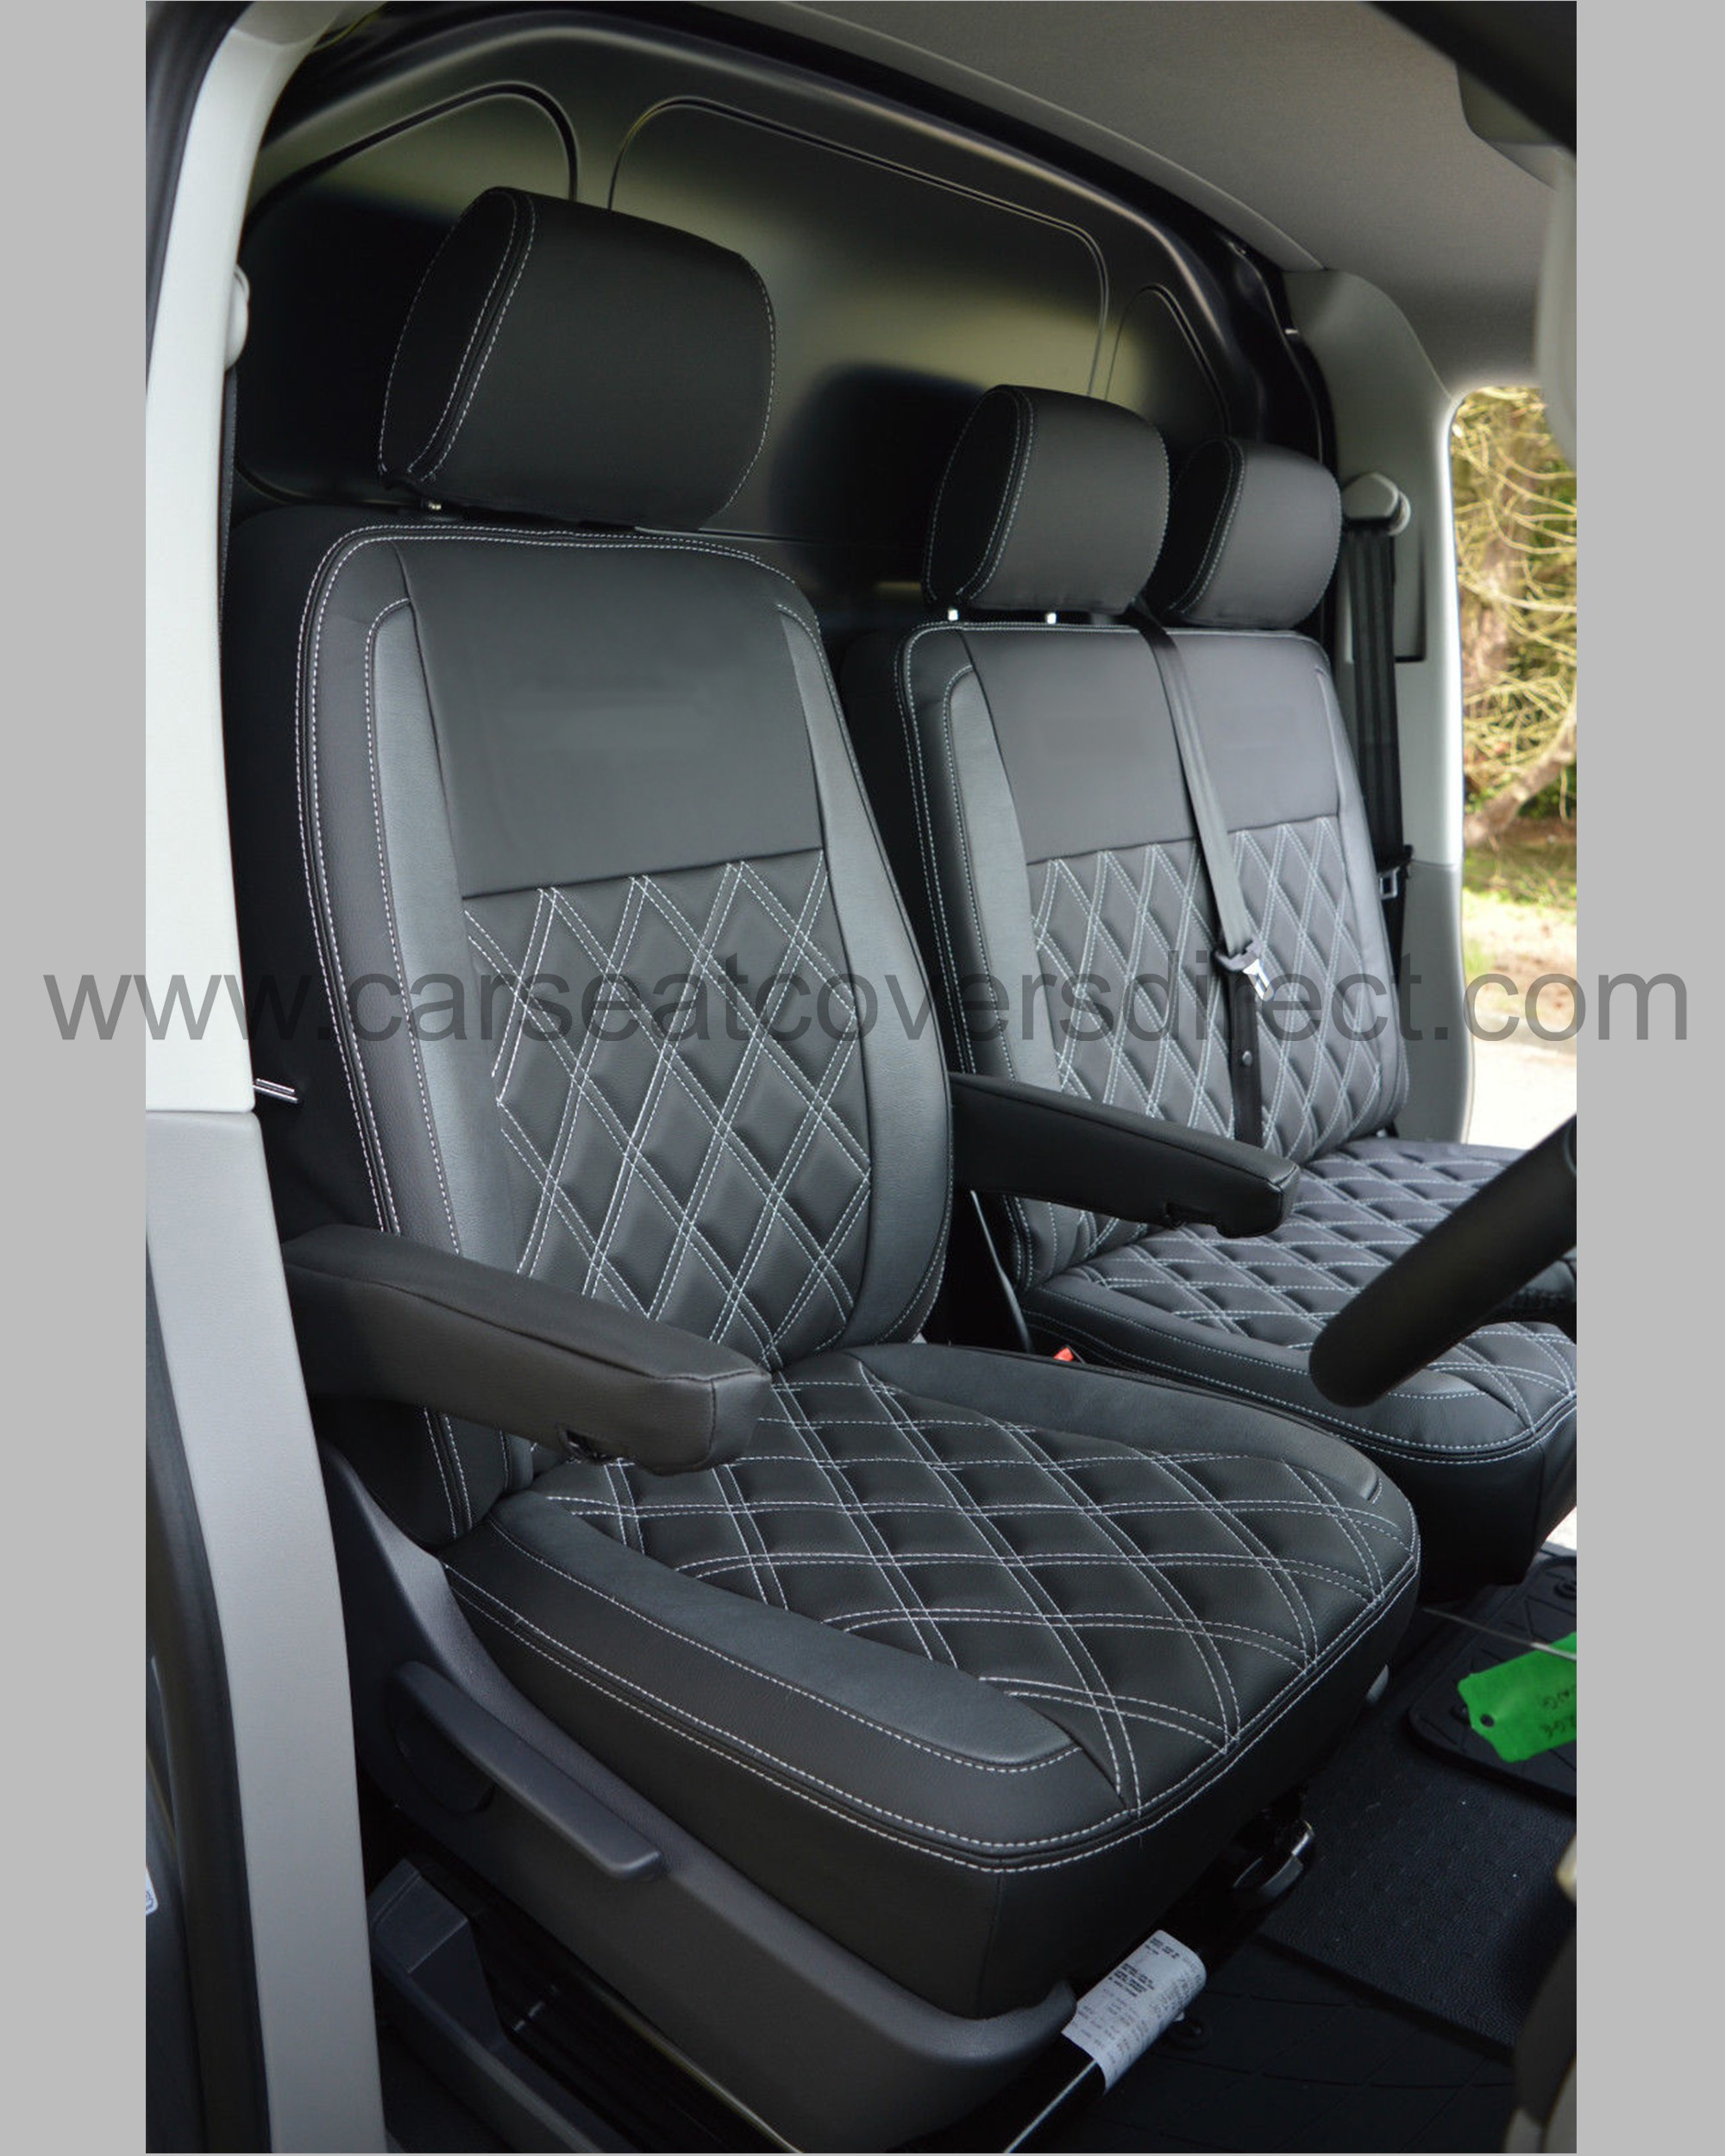 Volkswagen VW Transporter T5 Seat Covers - Black & Pewter Grey